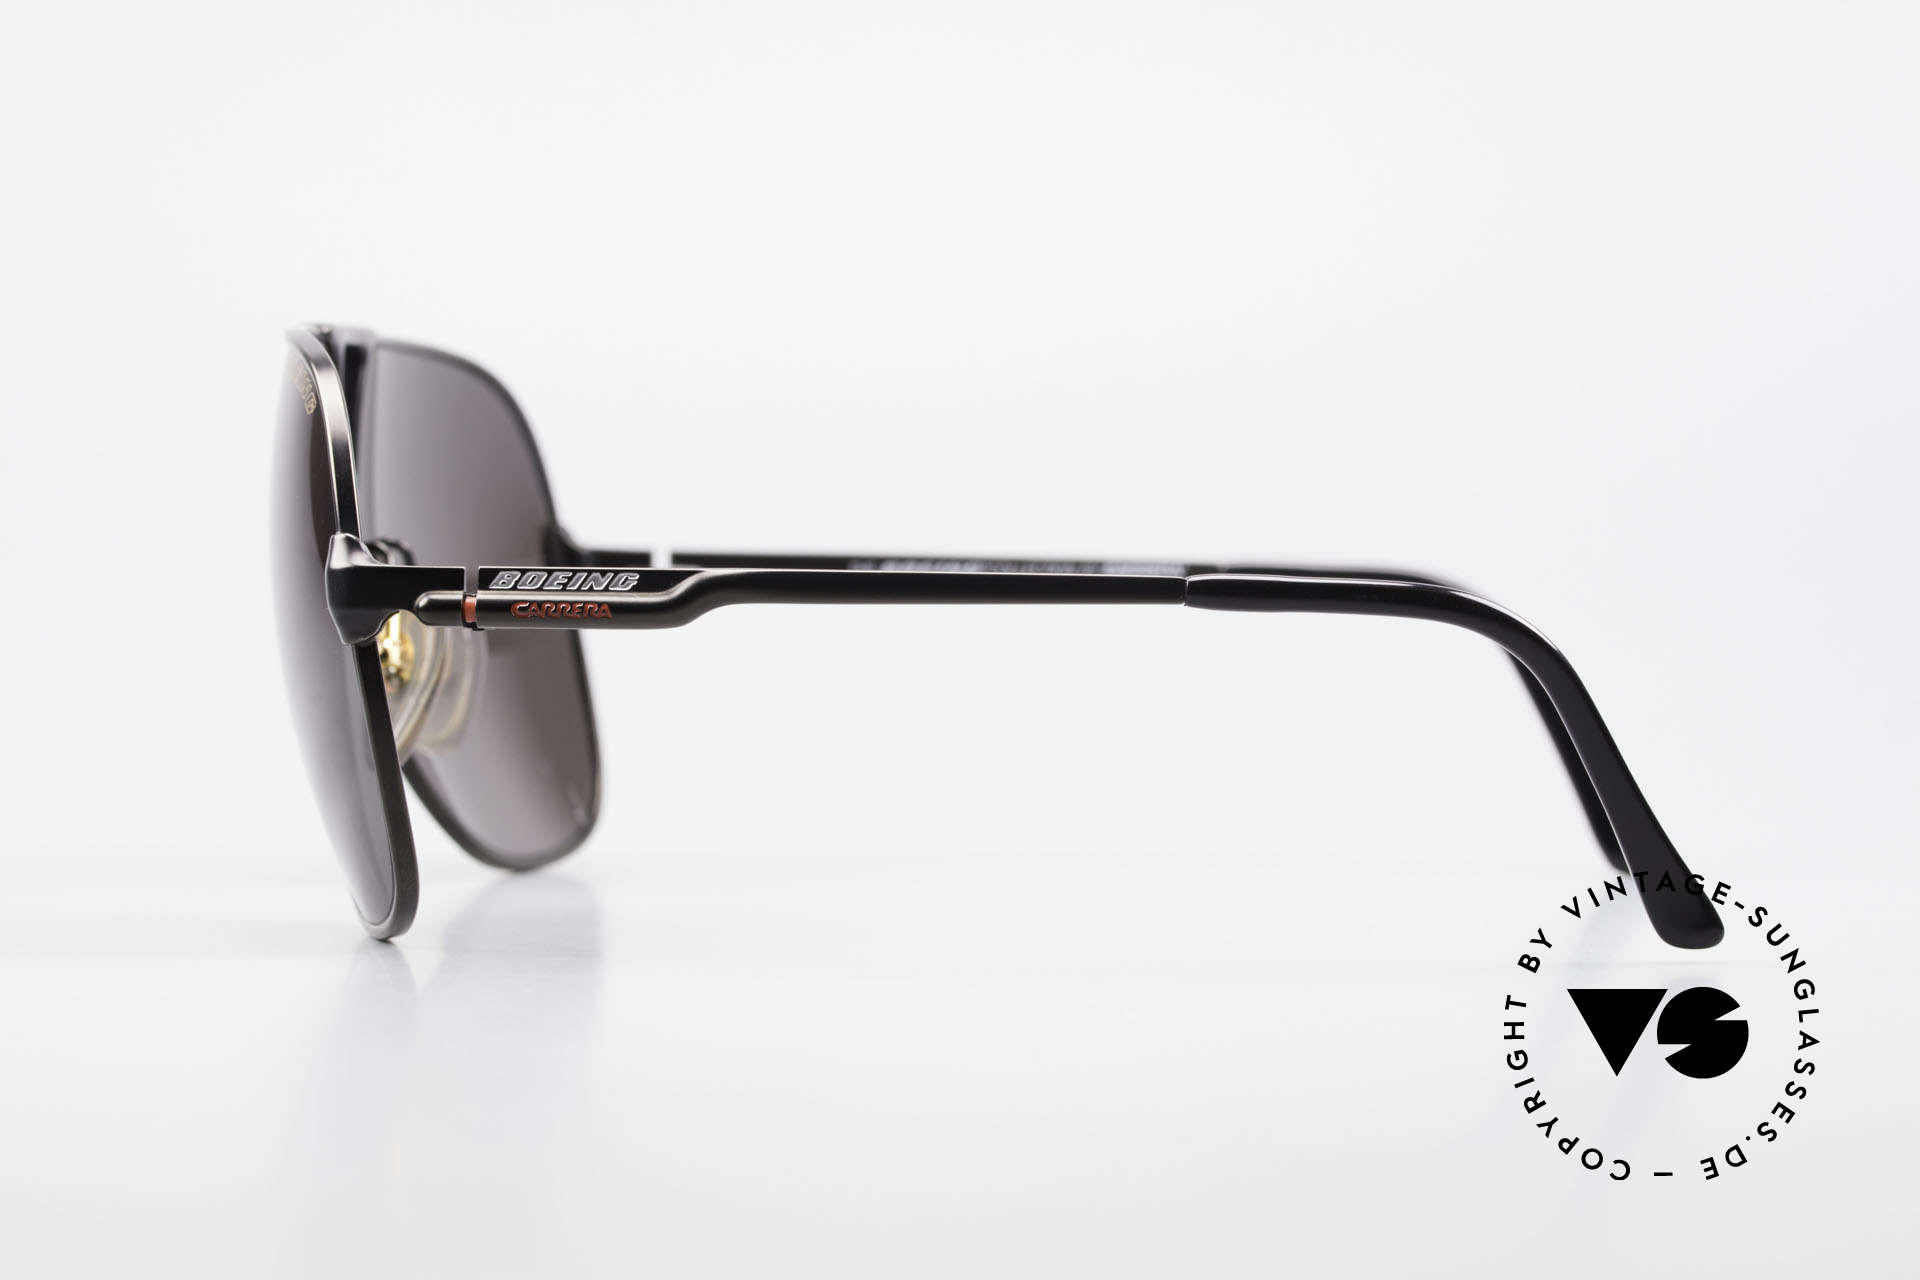 Boeing 5700 Vintage 80's Pilots Shades, new old stock (like all our BOEING aviator shades), Made for Men and Women